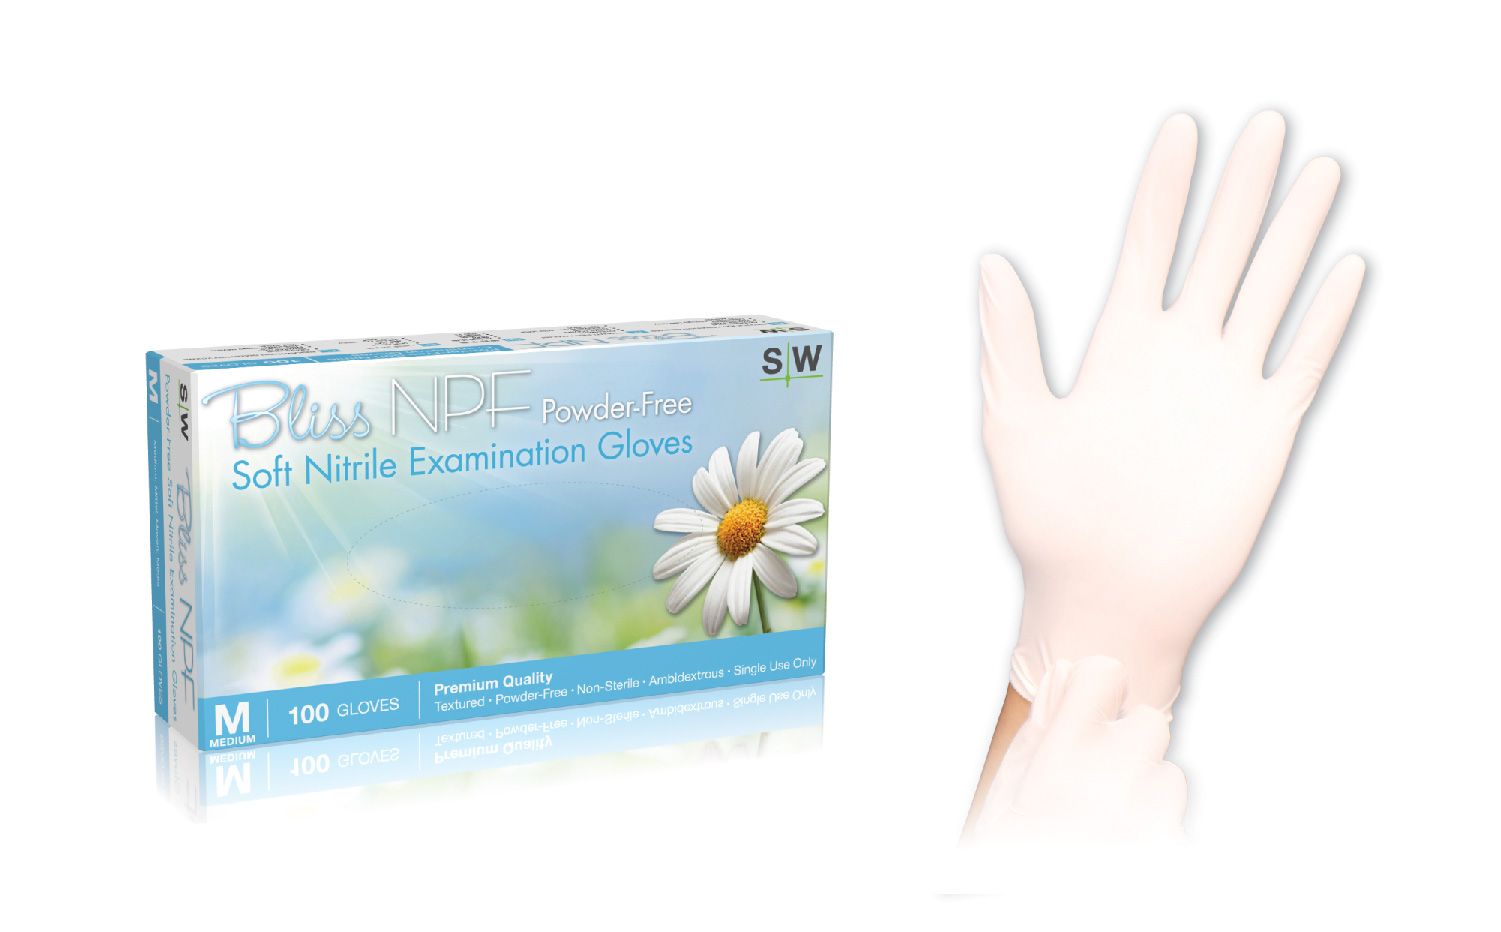 BLISS NPF POWDERFREE SOFT NITRILE EXAM GLOVES